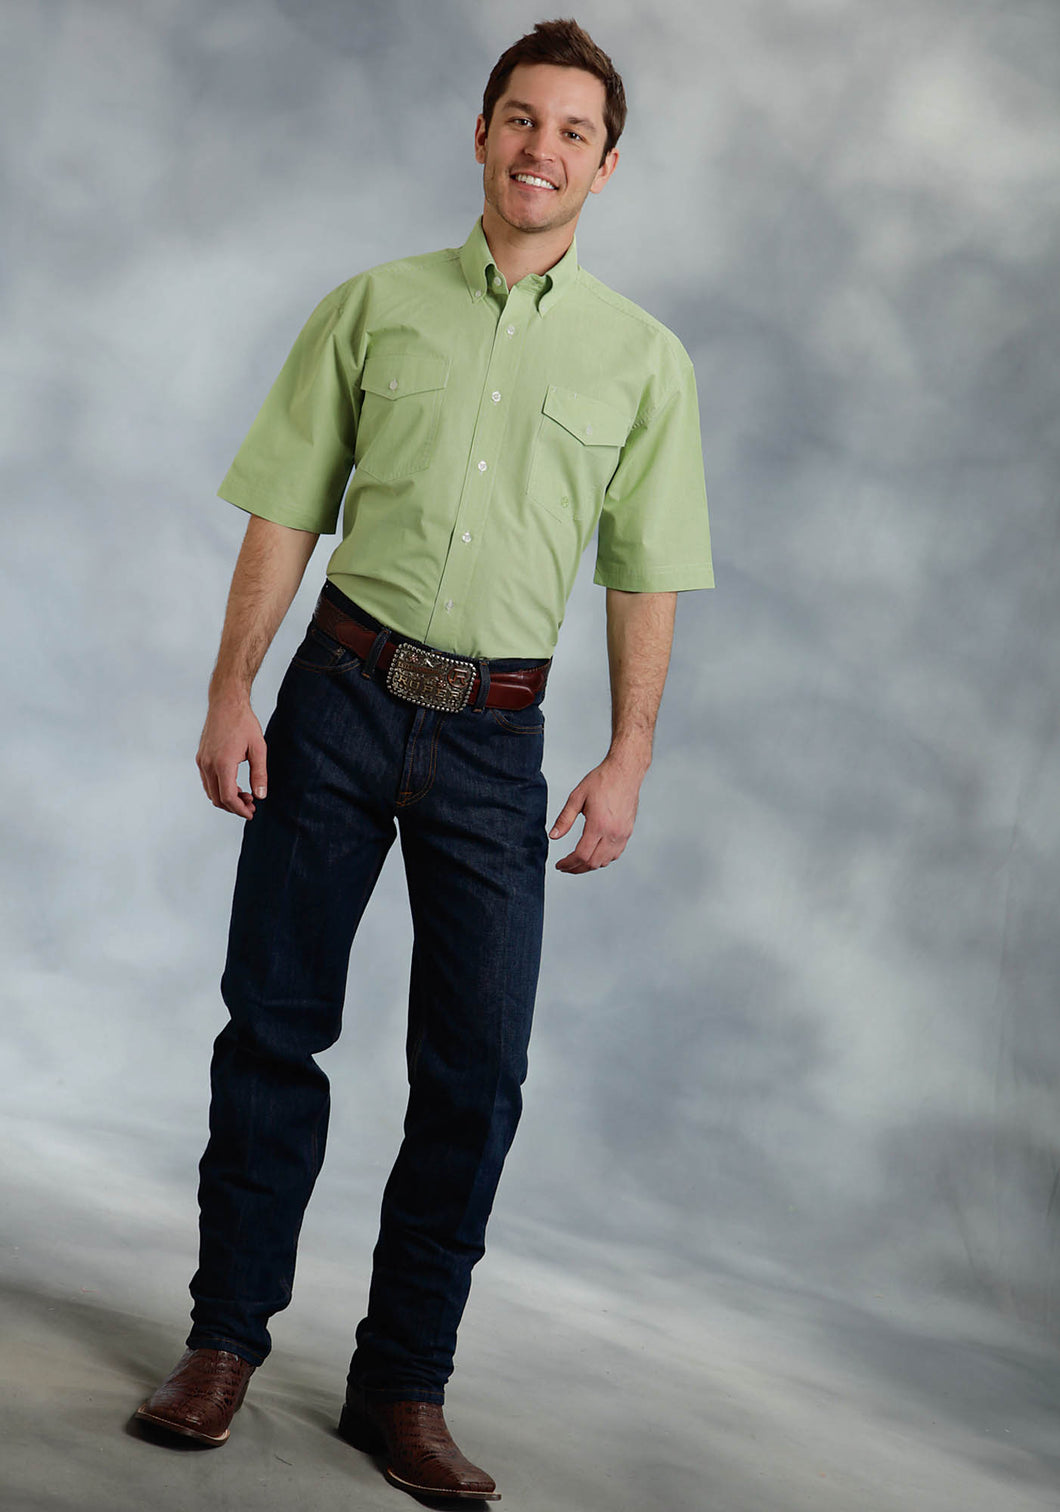 Amarillo Collection- Willow Winds Amarillo Mens Short Sleeve Shirt 0283 Mini Check - Lime Green